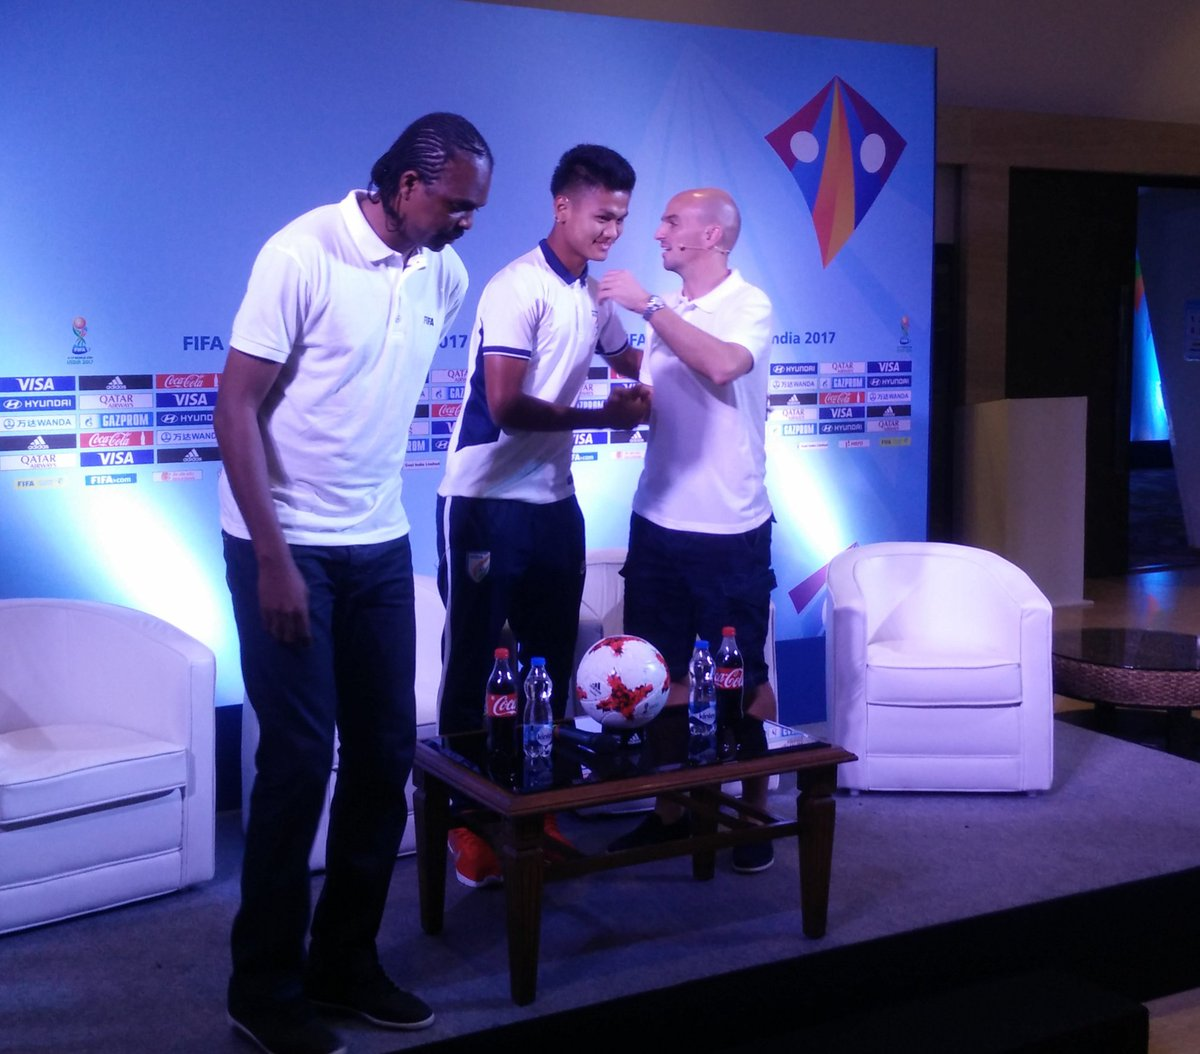 Kanu, Cambiasso among FIFA legends to attend FIFA U-17 draw